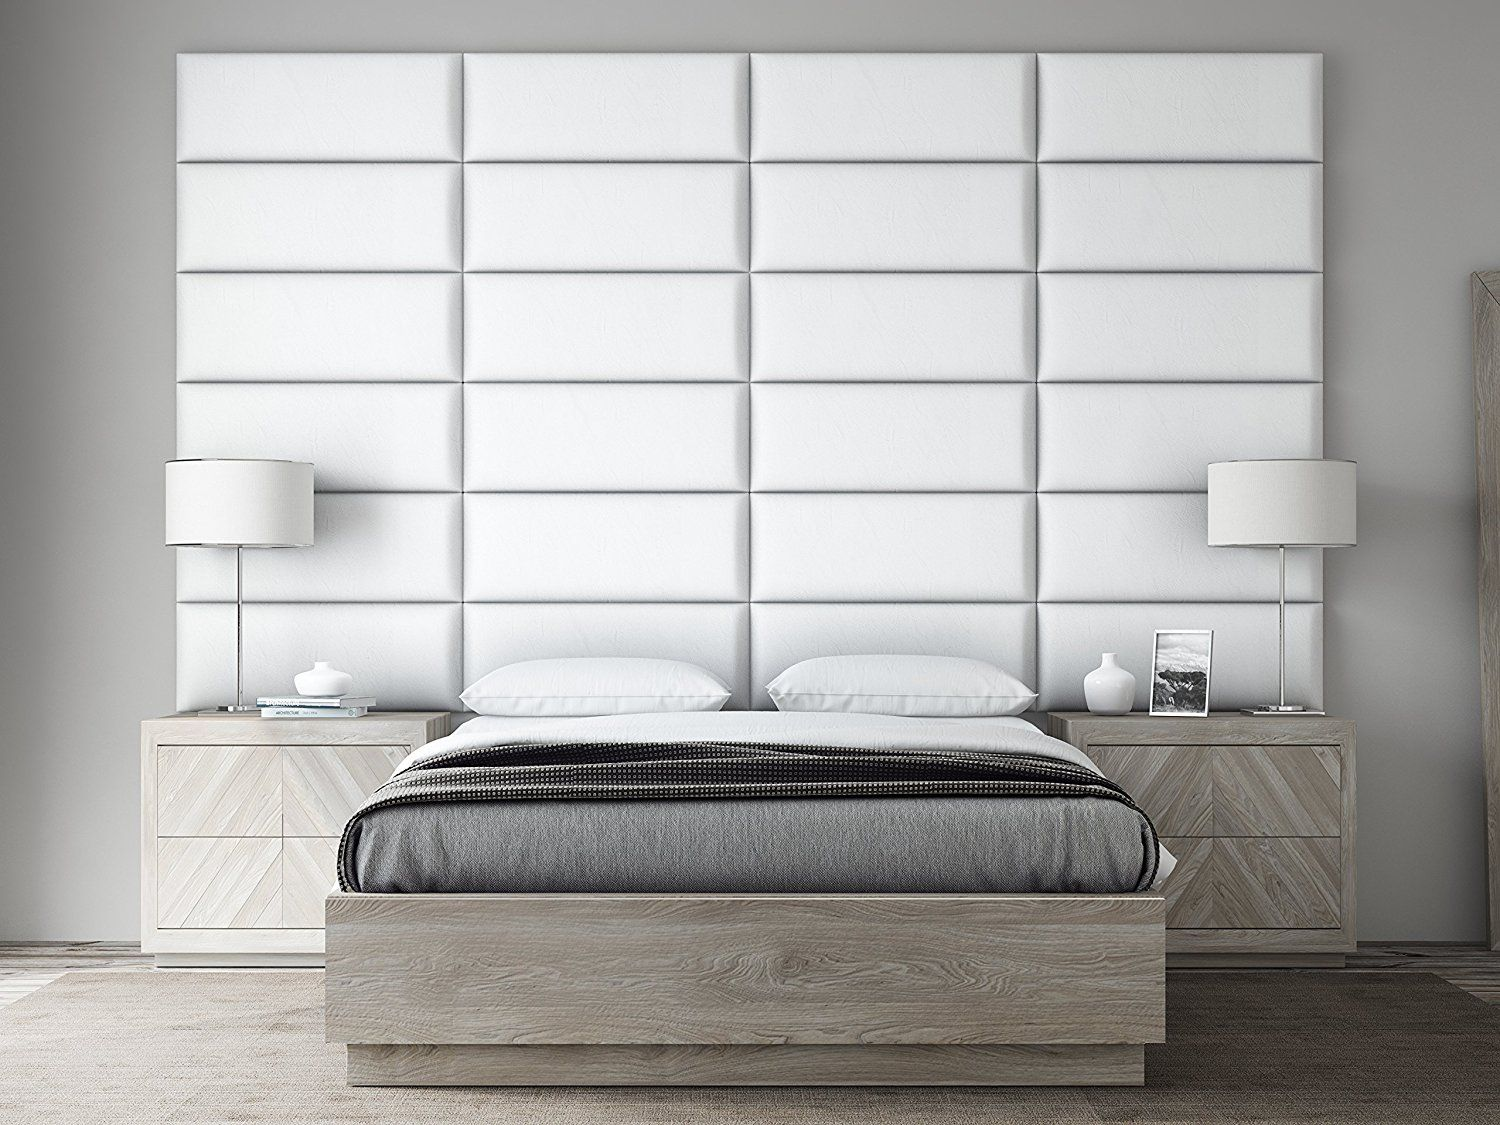 These White Upholstered Headboard Panels Can Be Used As A